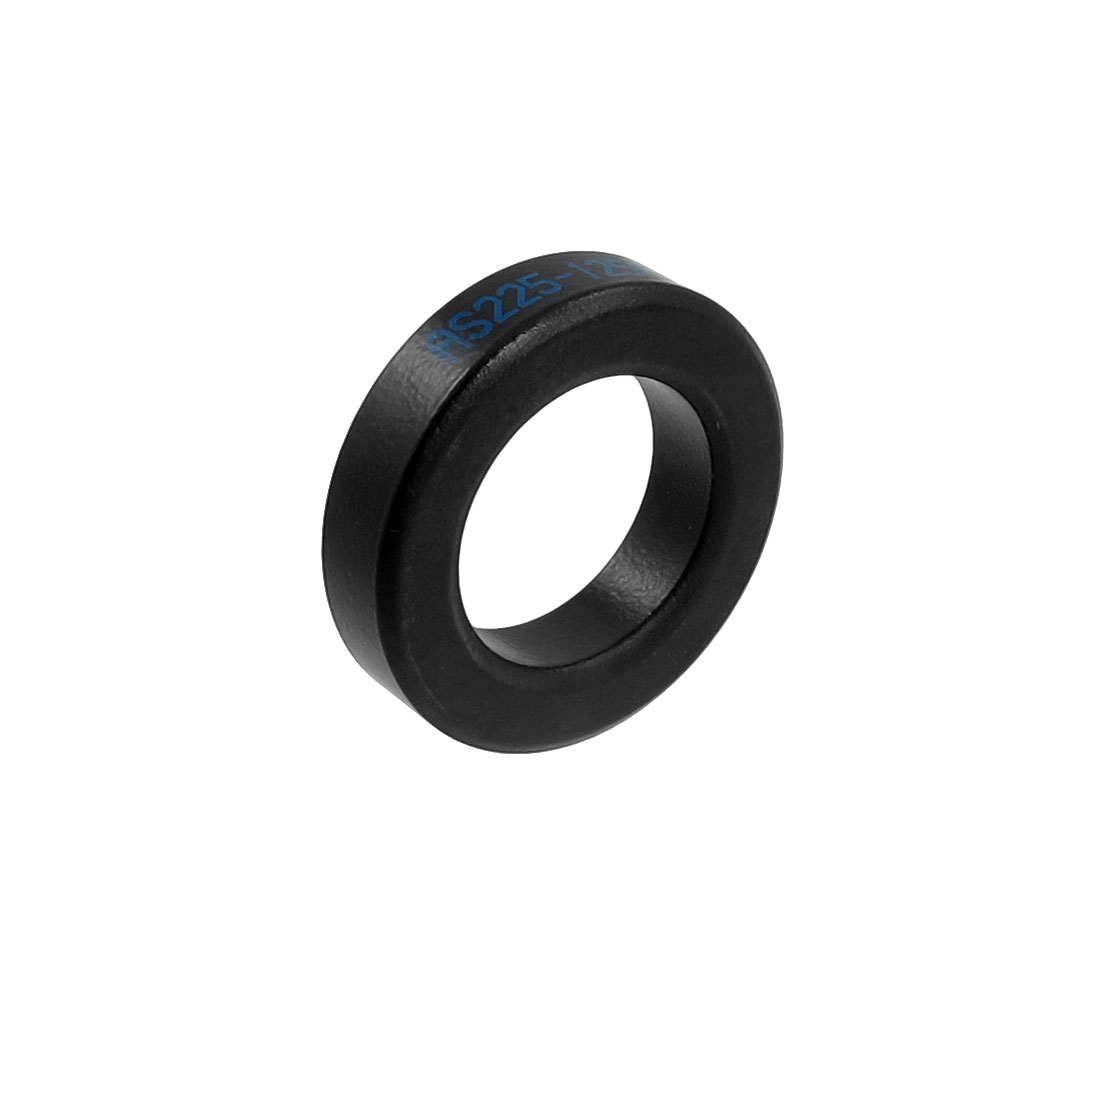 57mm x 35mm x 14mm Black Sendust Magnetic Powder Ferrite Core Ring AS225-125A